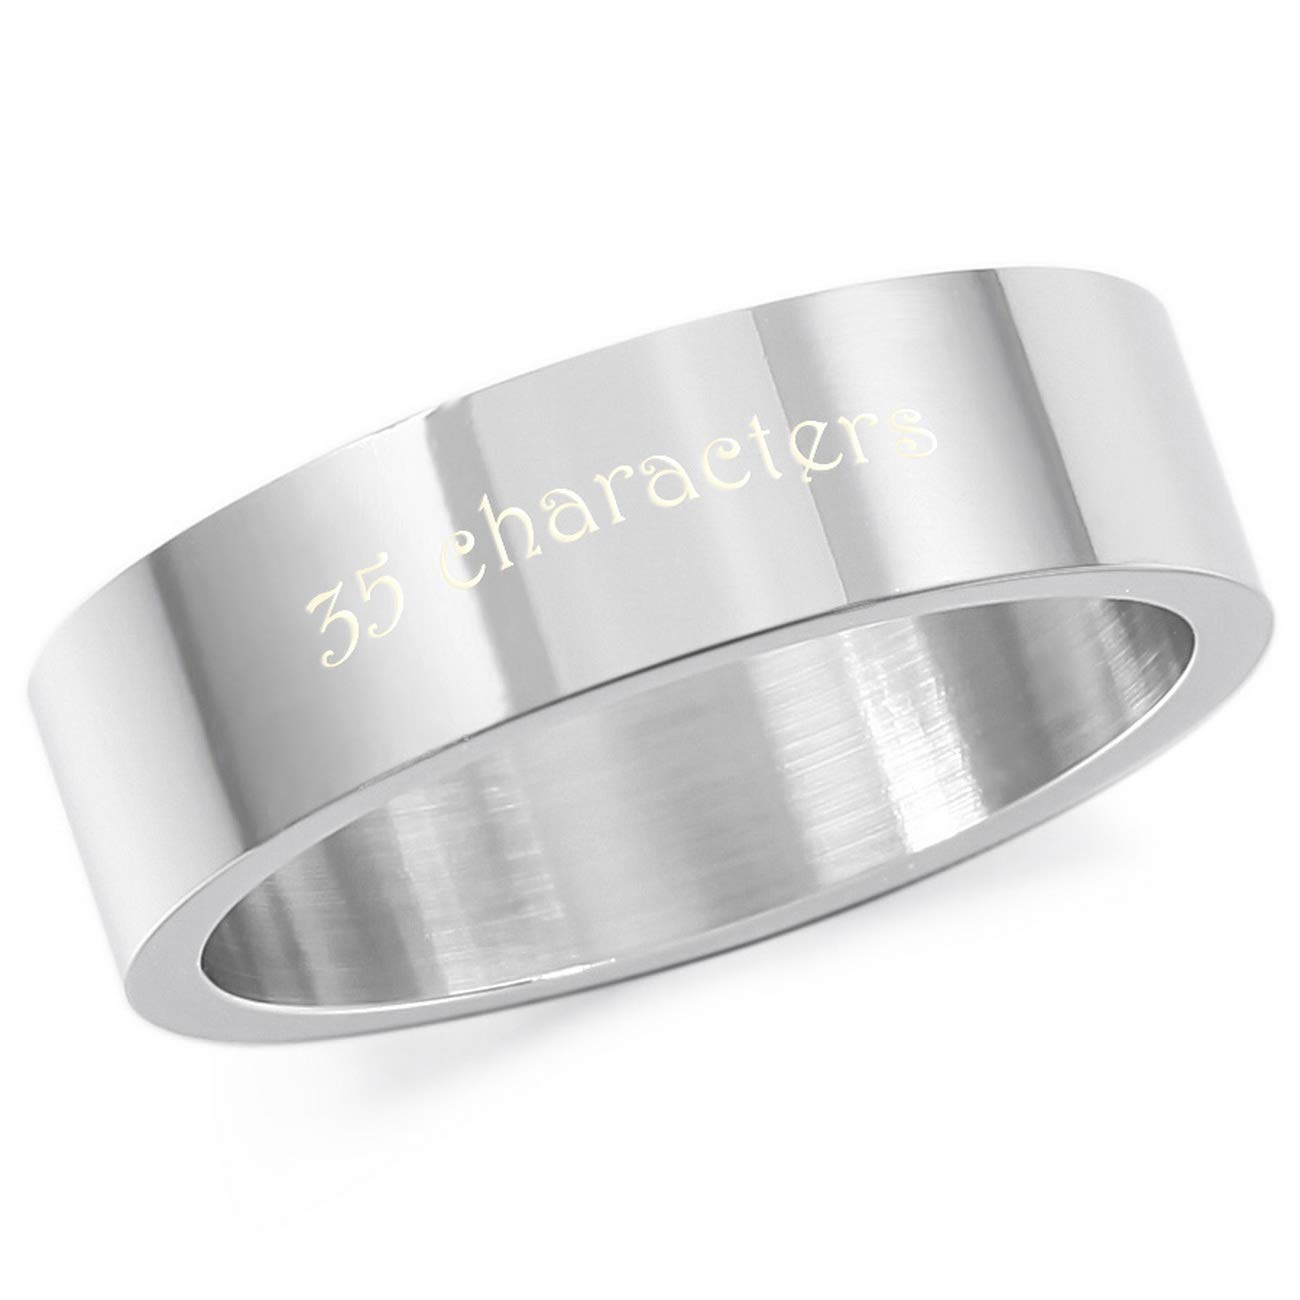 MeMeDIY 6mm Silver Tone Stainless Steel Ring Wedding Band Size 10 - Customized Engraving by MeMeDIY (Image #1)